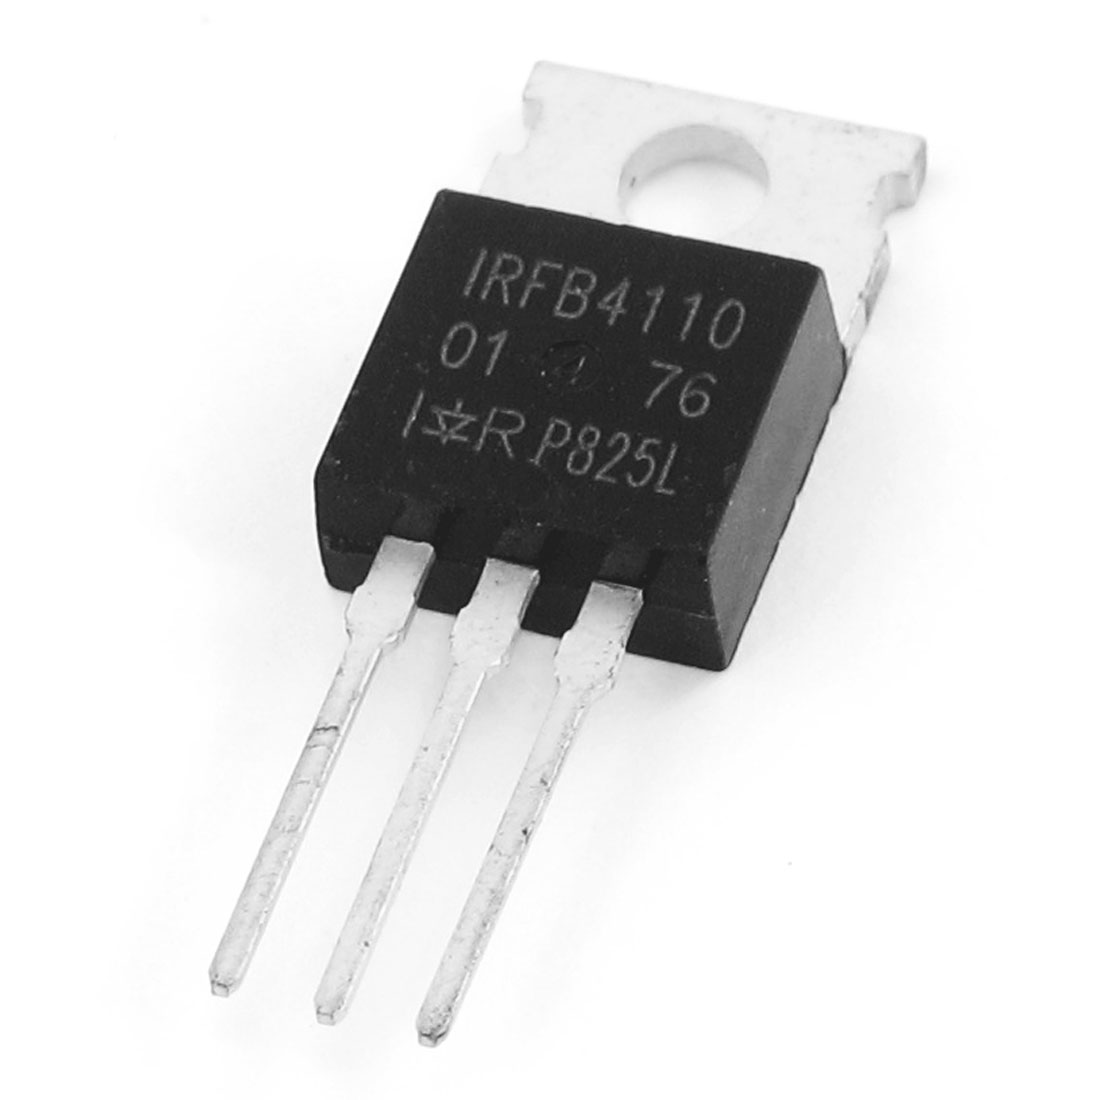 Power Amplifier 100V 180A 3 Pole Silicon Transistor IRFB4110